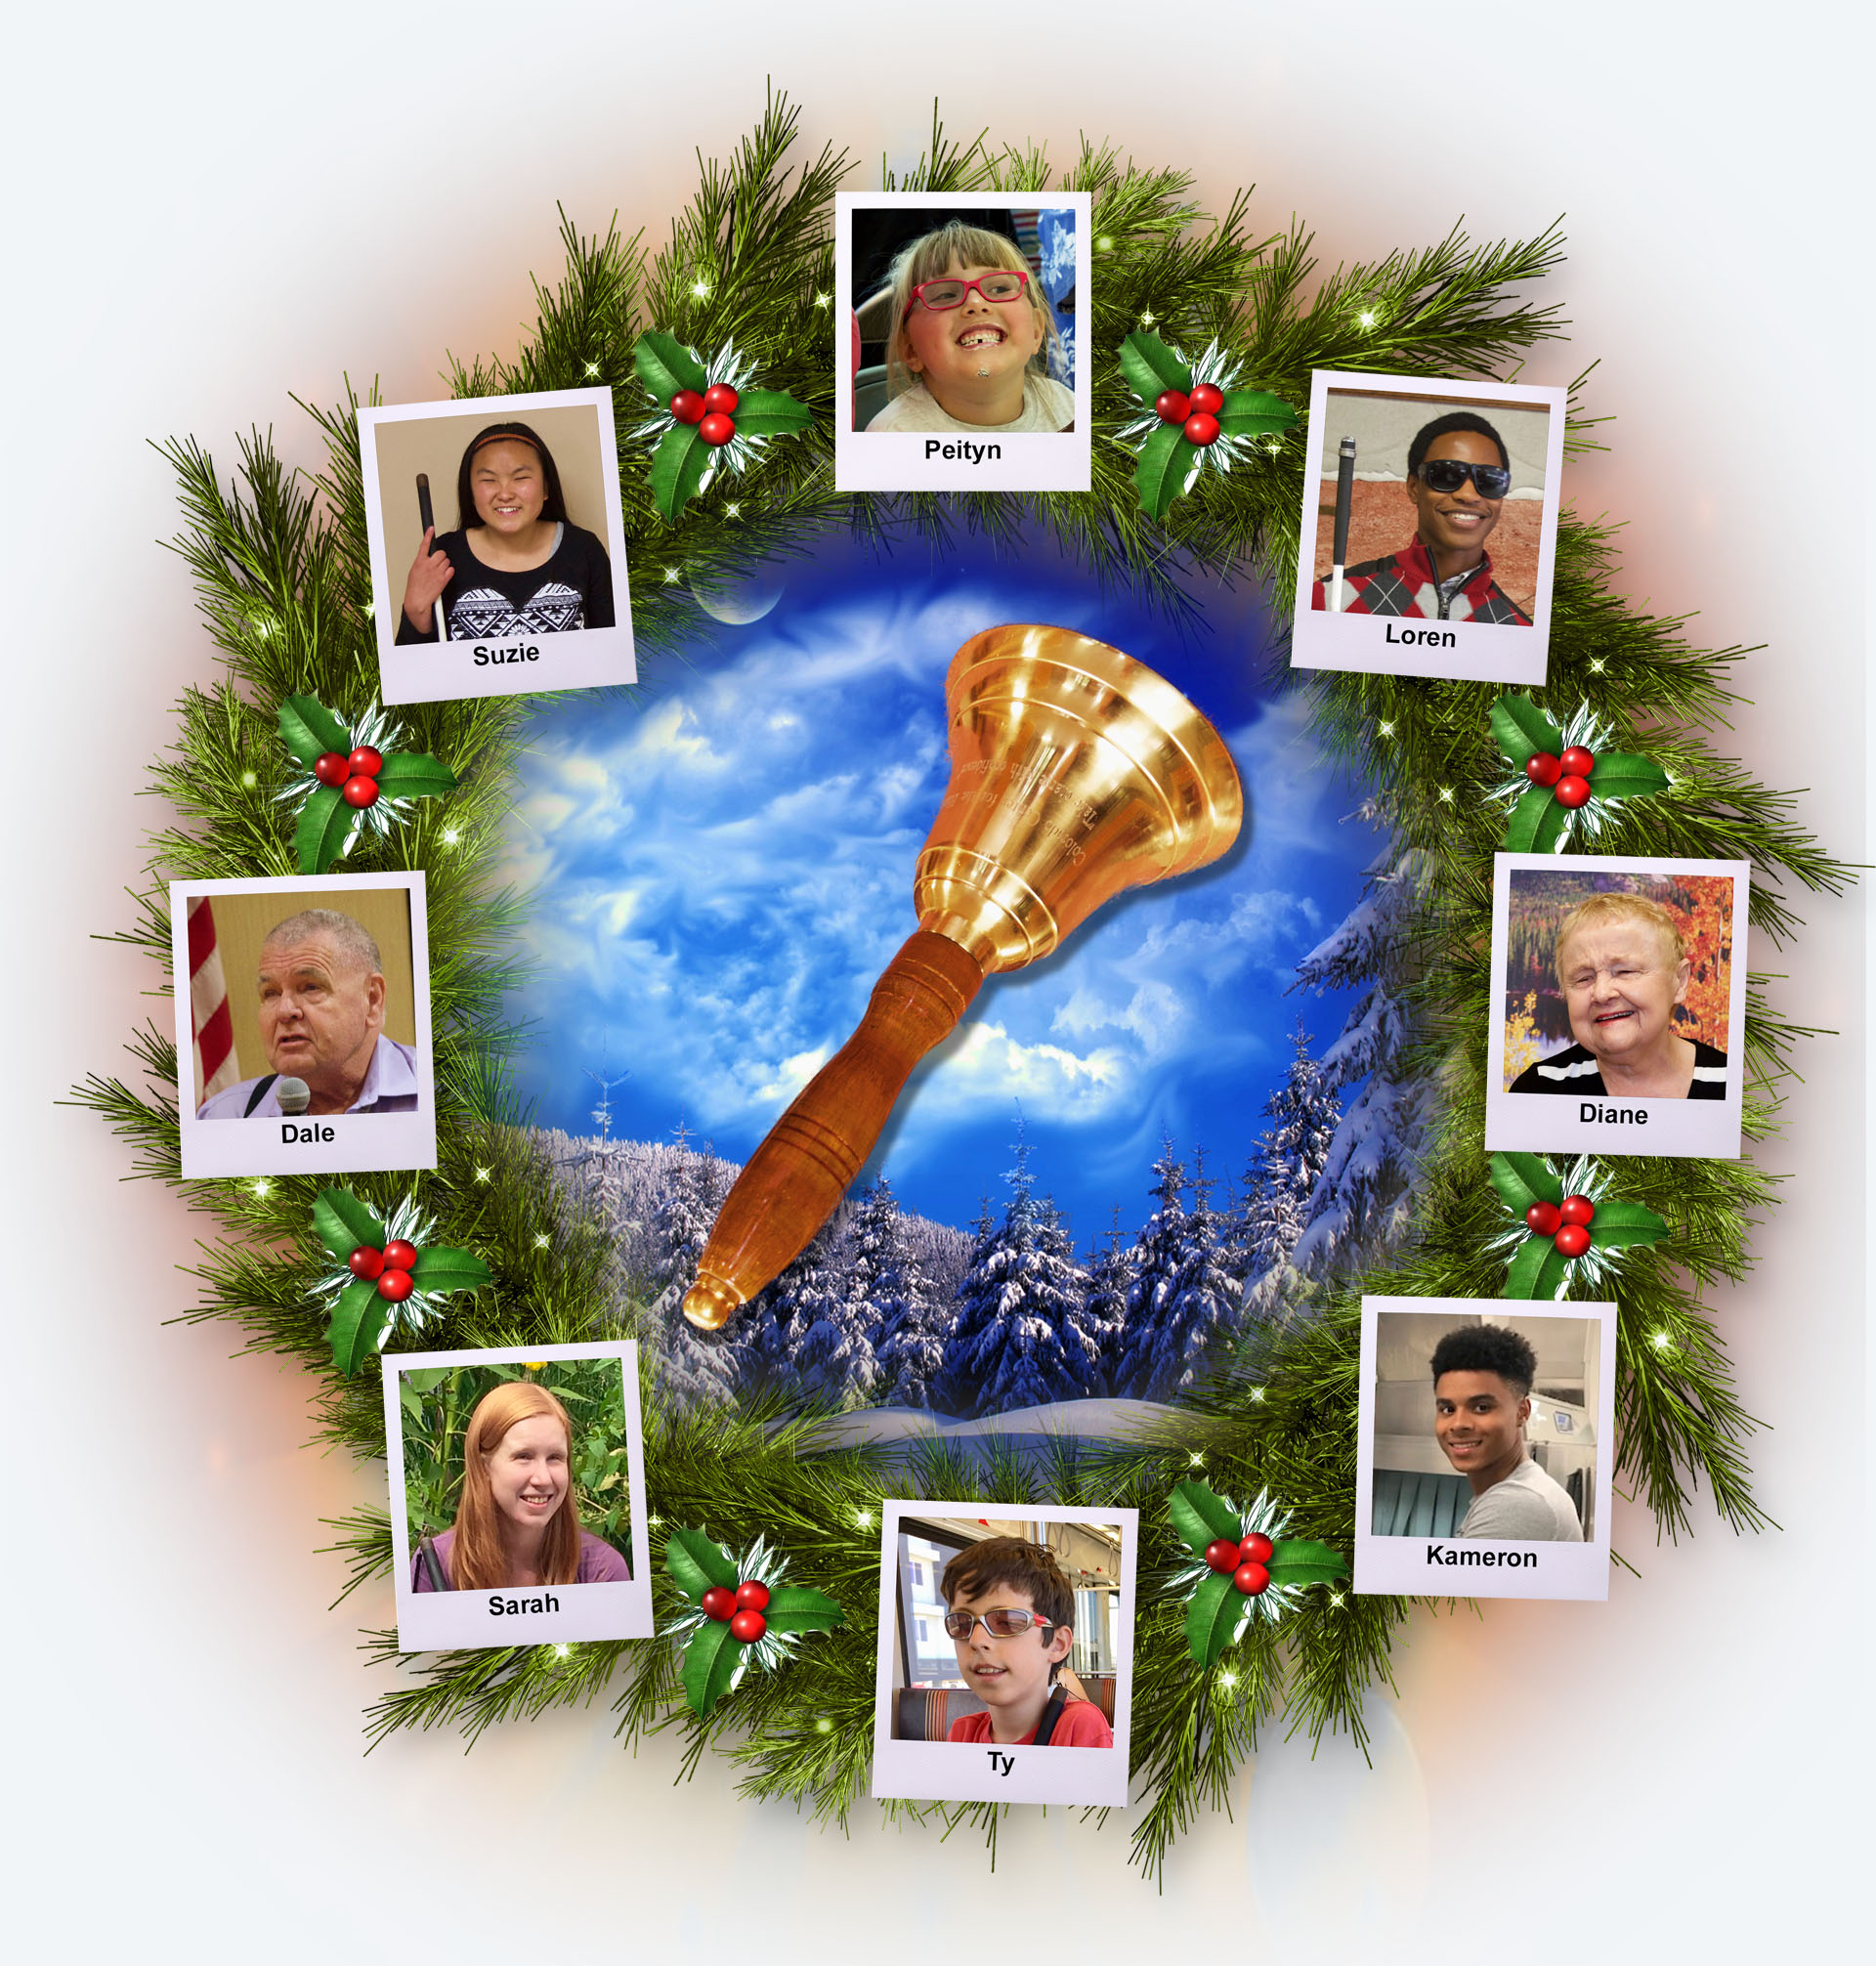 CCB Wreath with Freedom Bell centered and photos of People from each CCB Program area